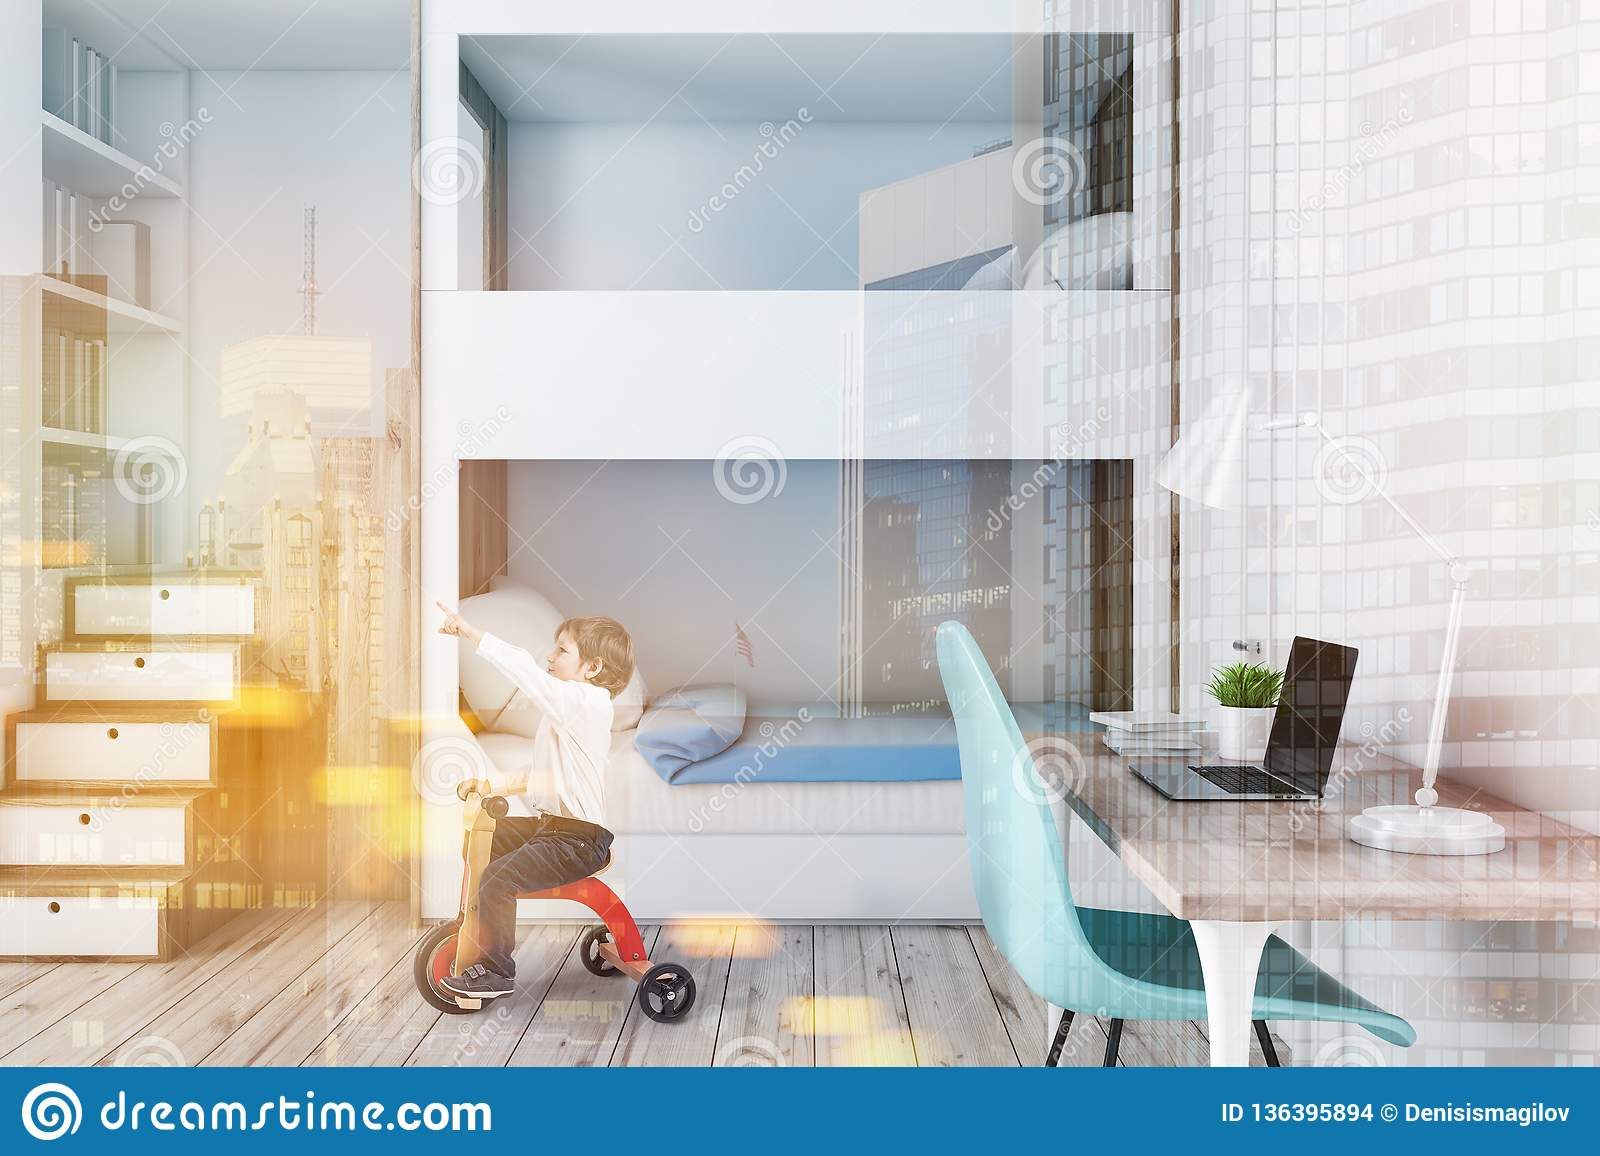 Bunk Bed And Computer Desk Boy Stock Photo Image Of Dormitory Large 136395894